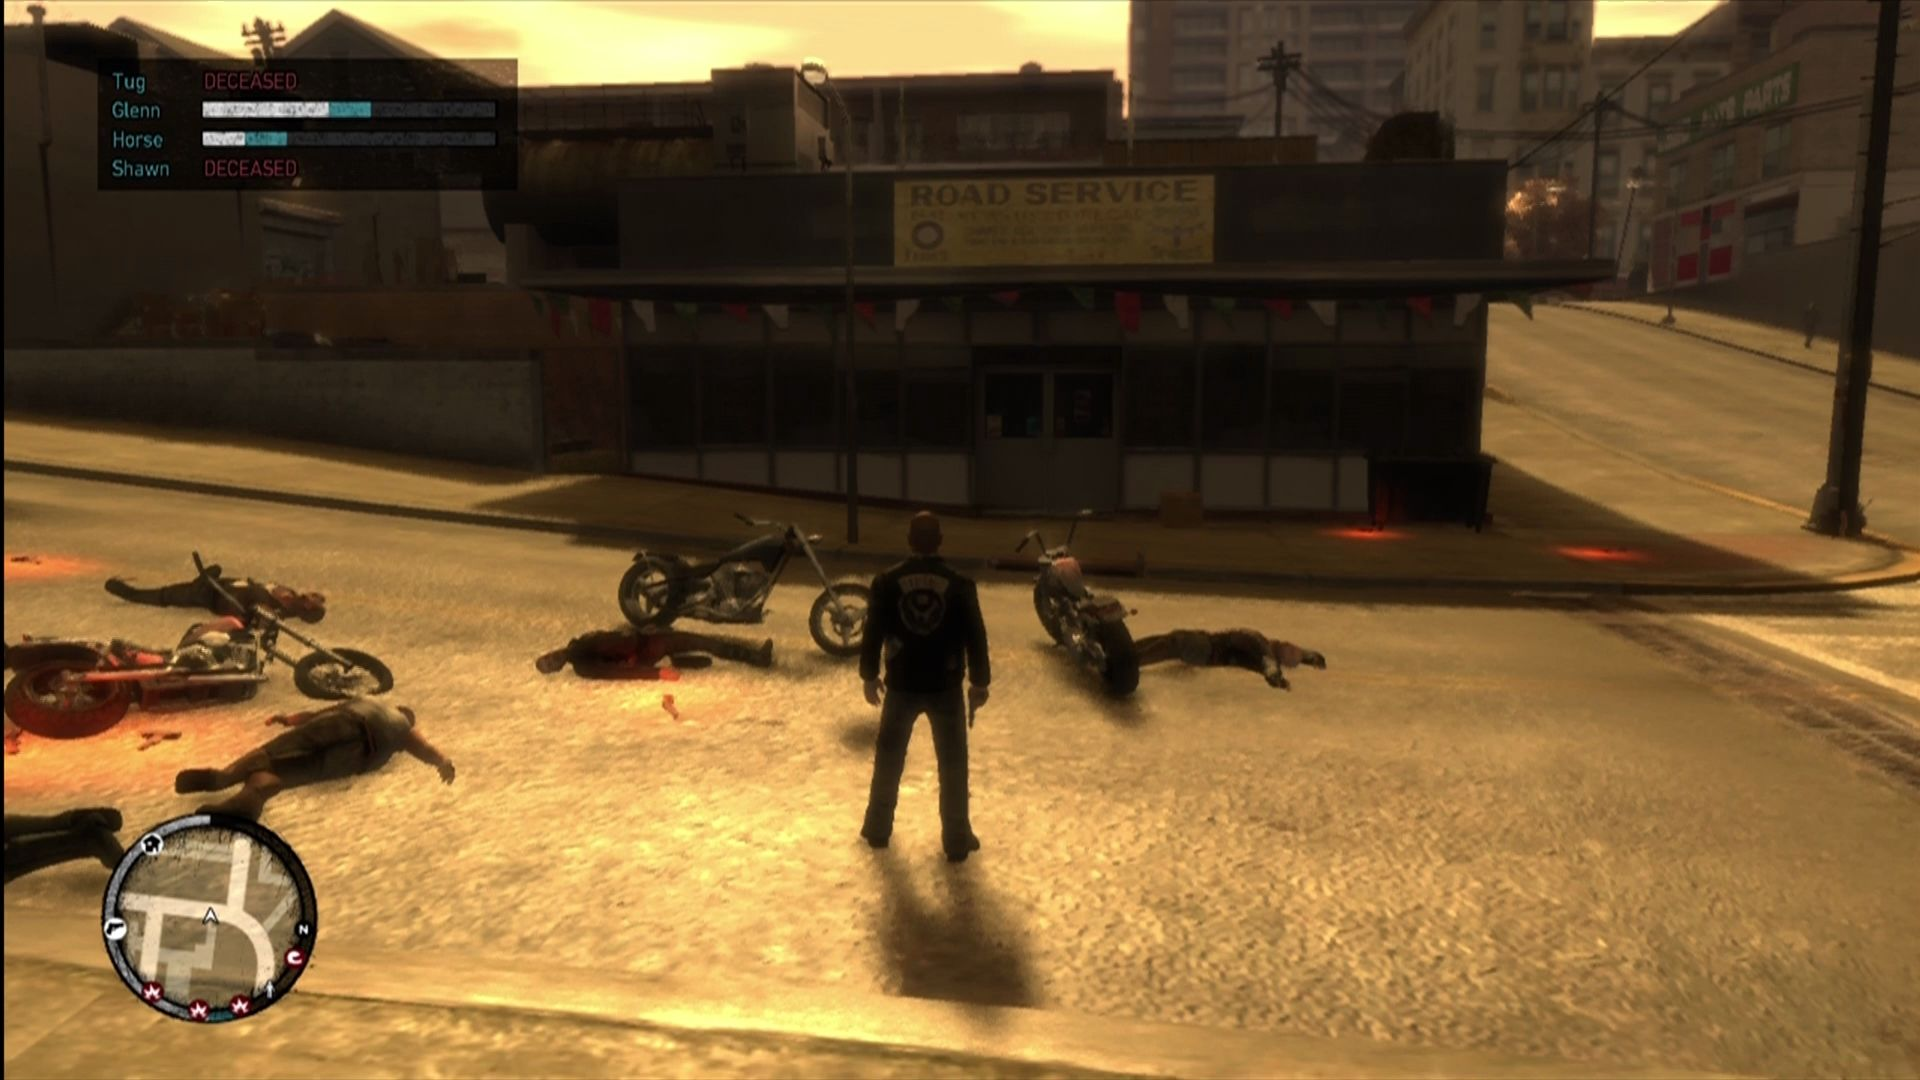 Grand Theft Auto IV: The Lost and Damned Xbox 360 Your crew gains experience, toughness, and weapons as they fight with you.